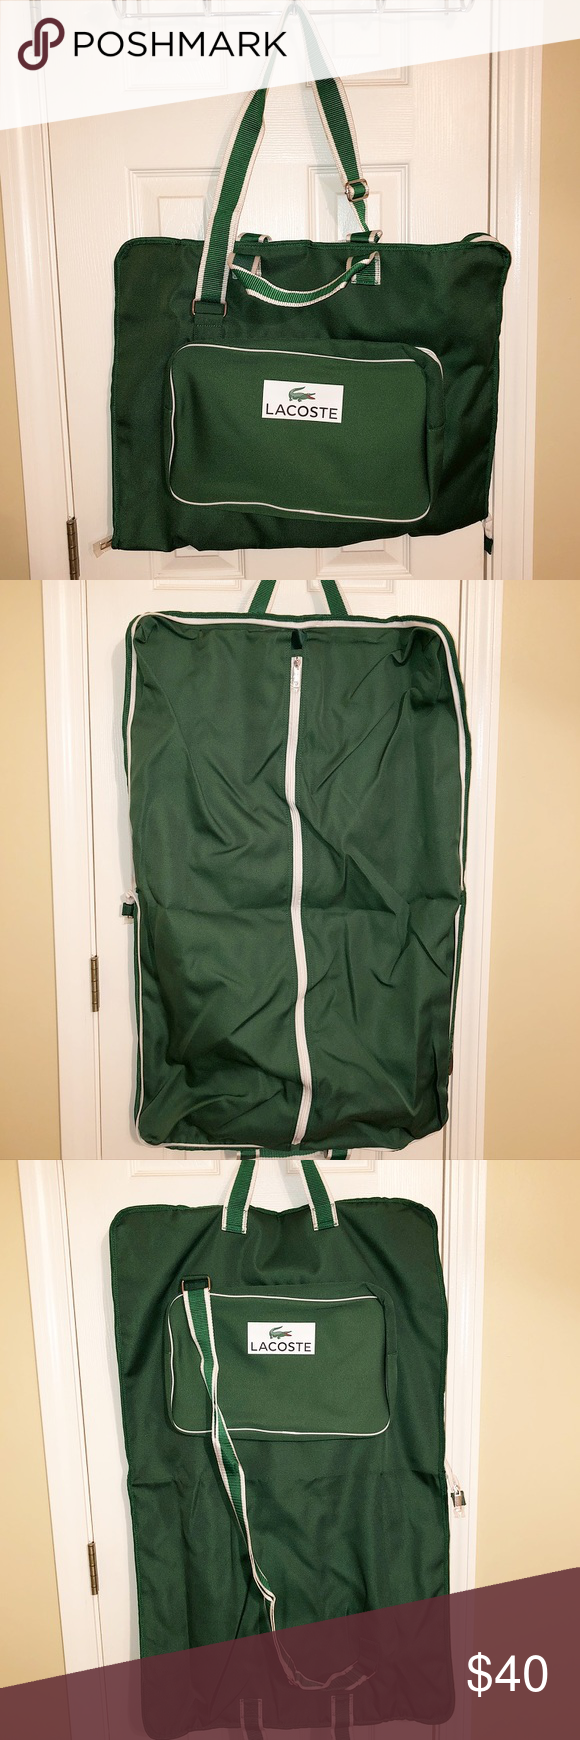 412585d77c Brand New Lacoste Garment Bag Multiple compartments. Comes in original  packaging! Lacoste Bags